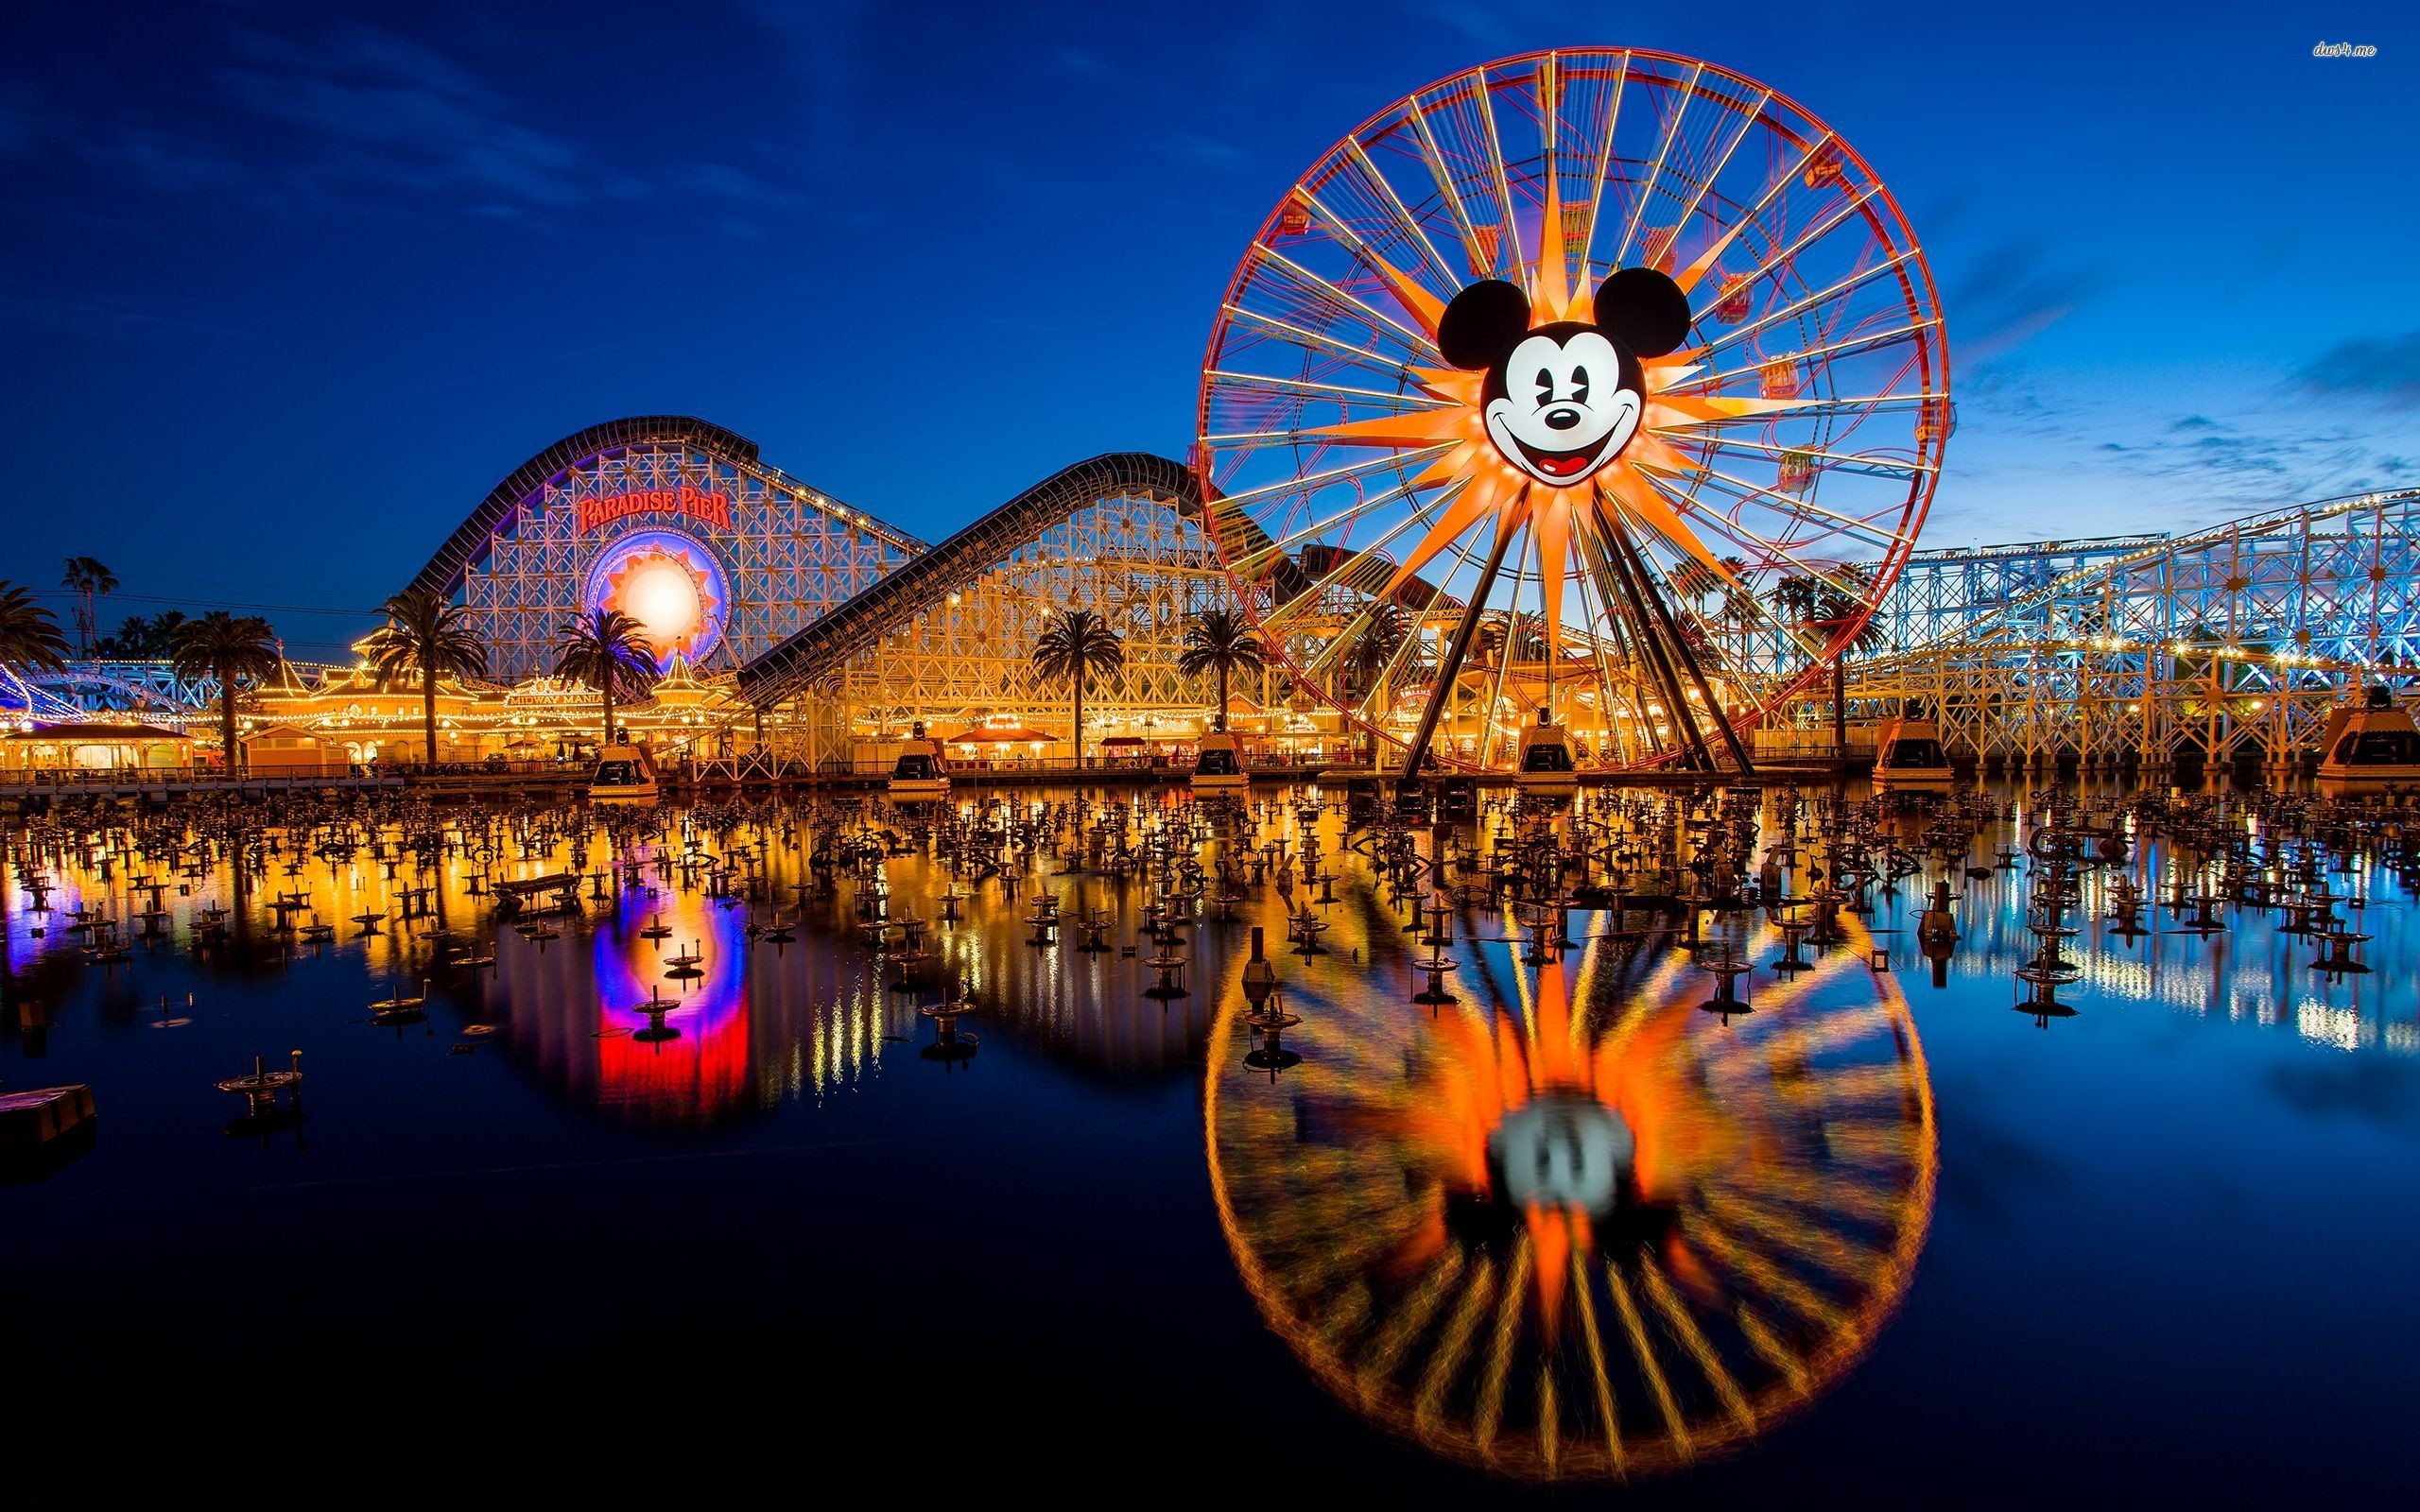 2560x1600 Fall in love with our free set of Disneyland wallpapers